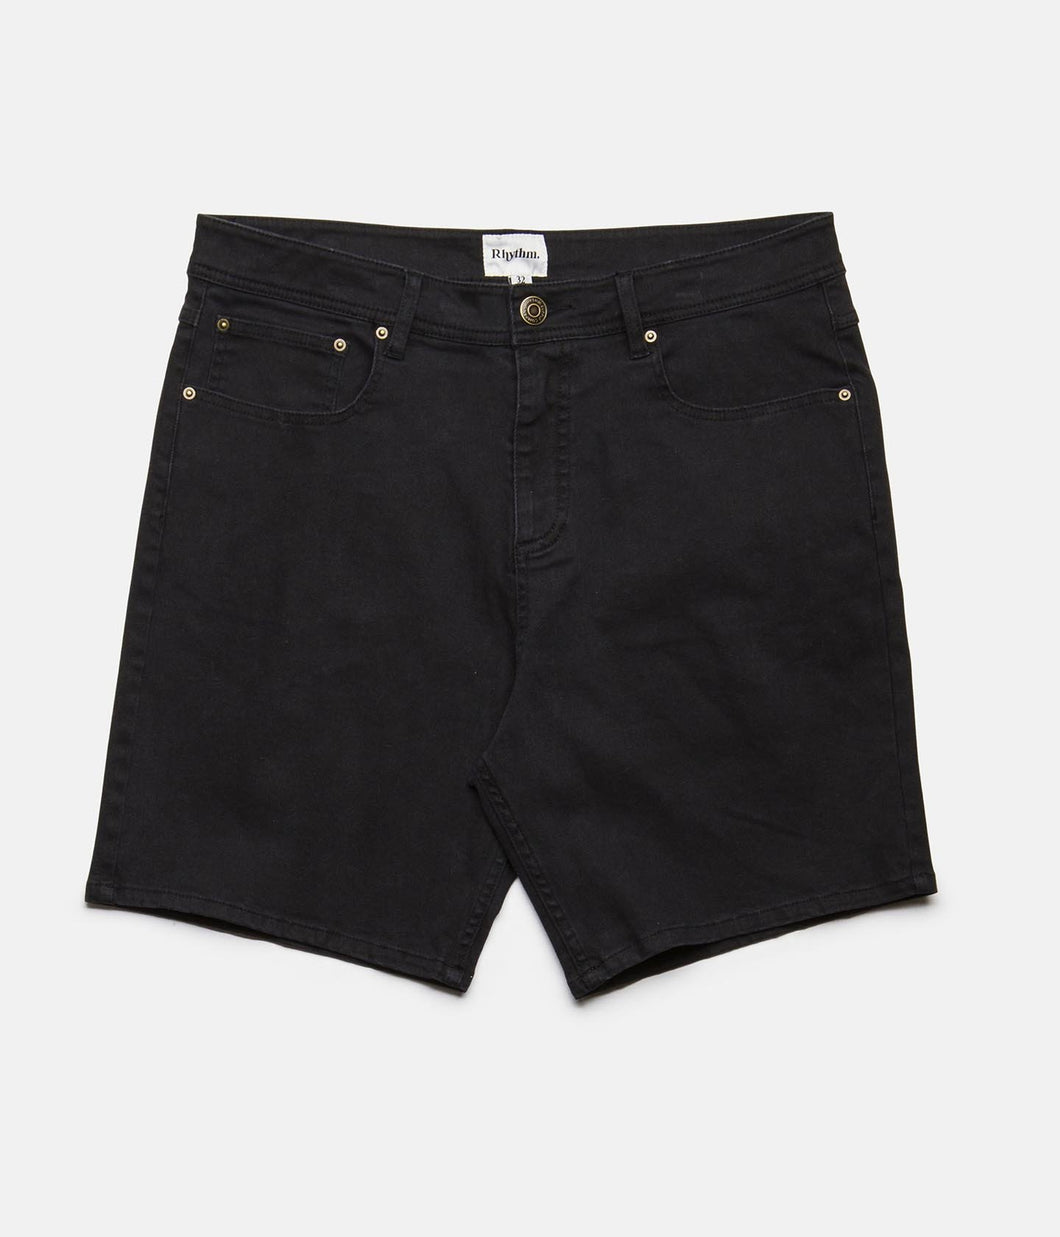 Rhythm Studio Denim Walkshort (Vintage Black)